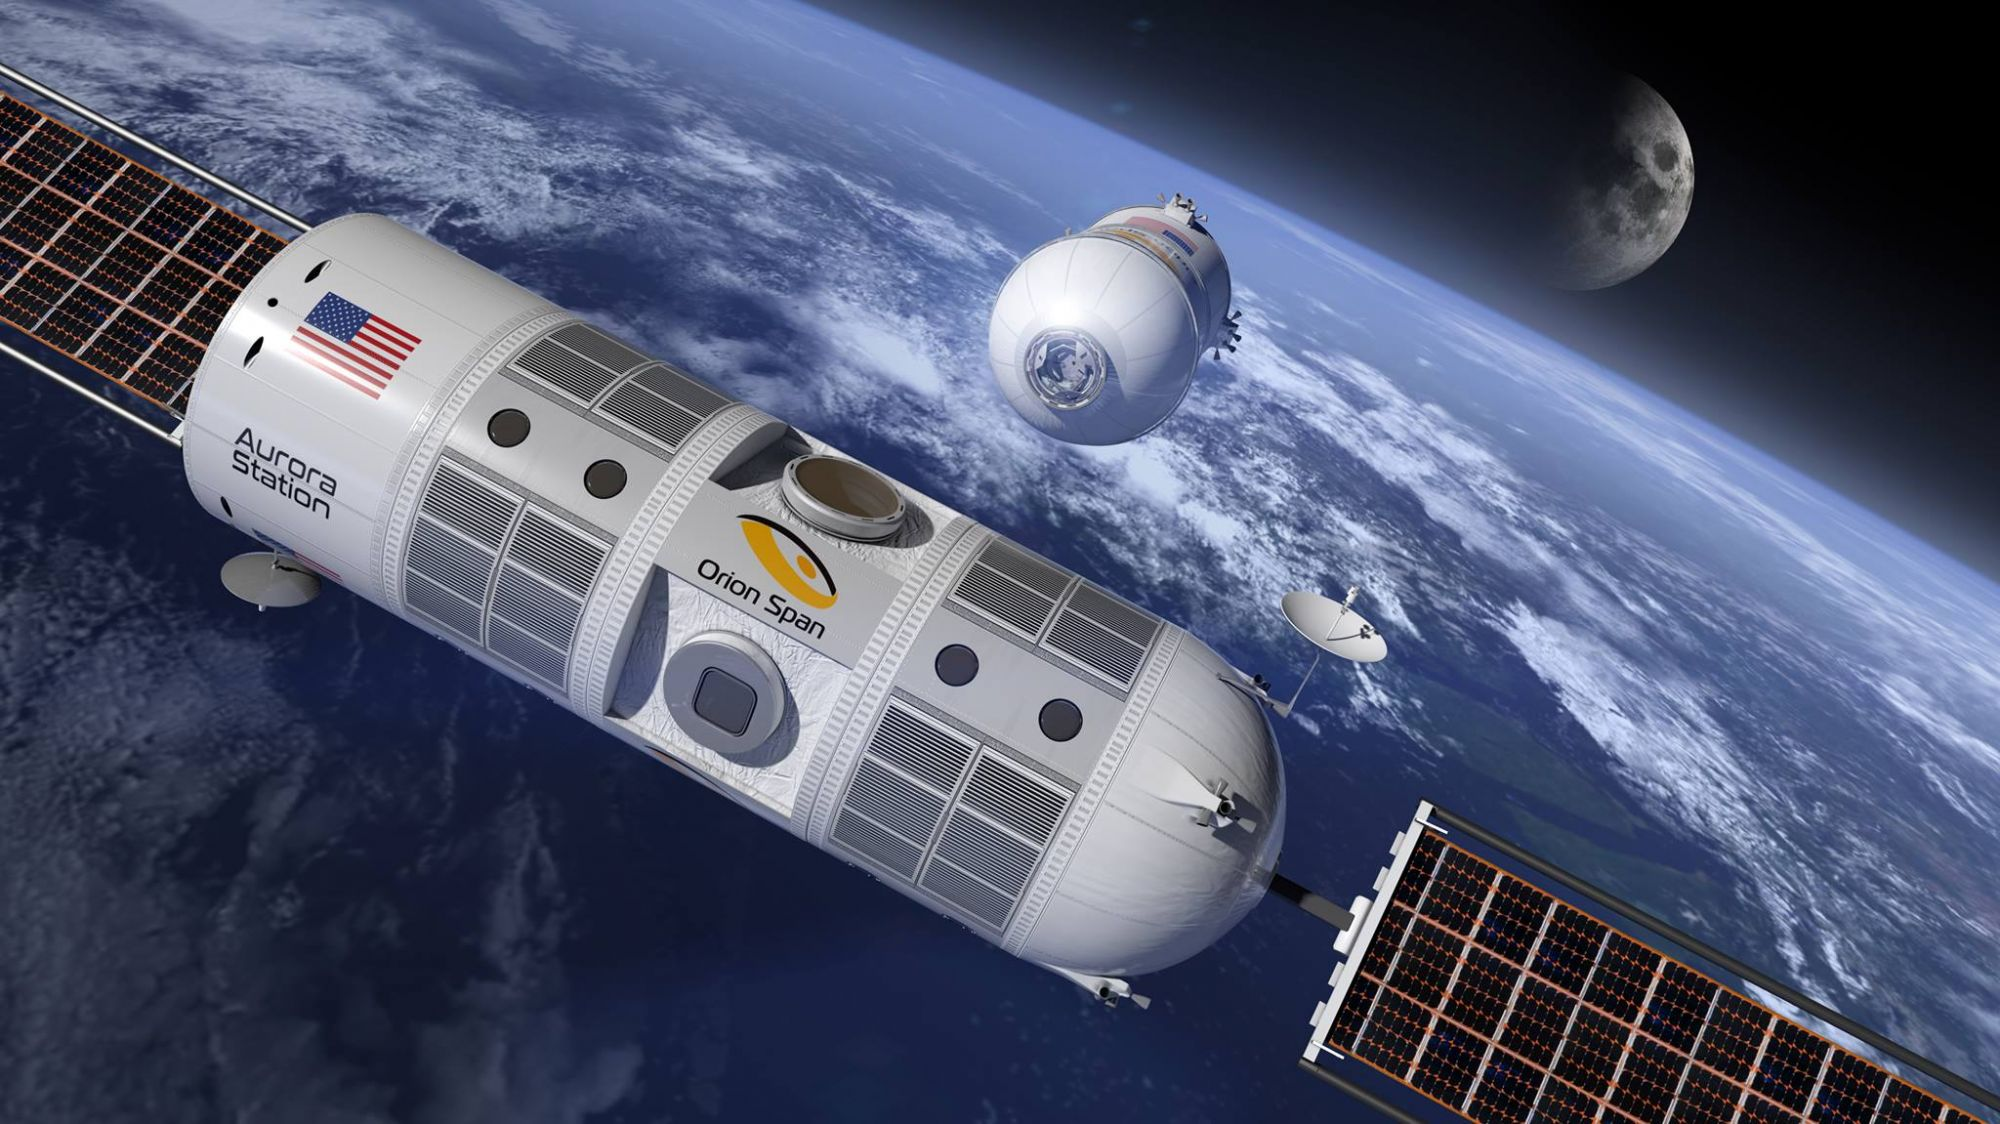 The World's First Luxury Space Hotel Is Now Taking Reservations